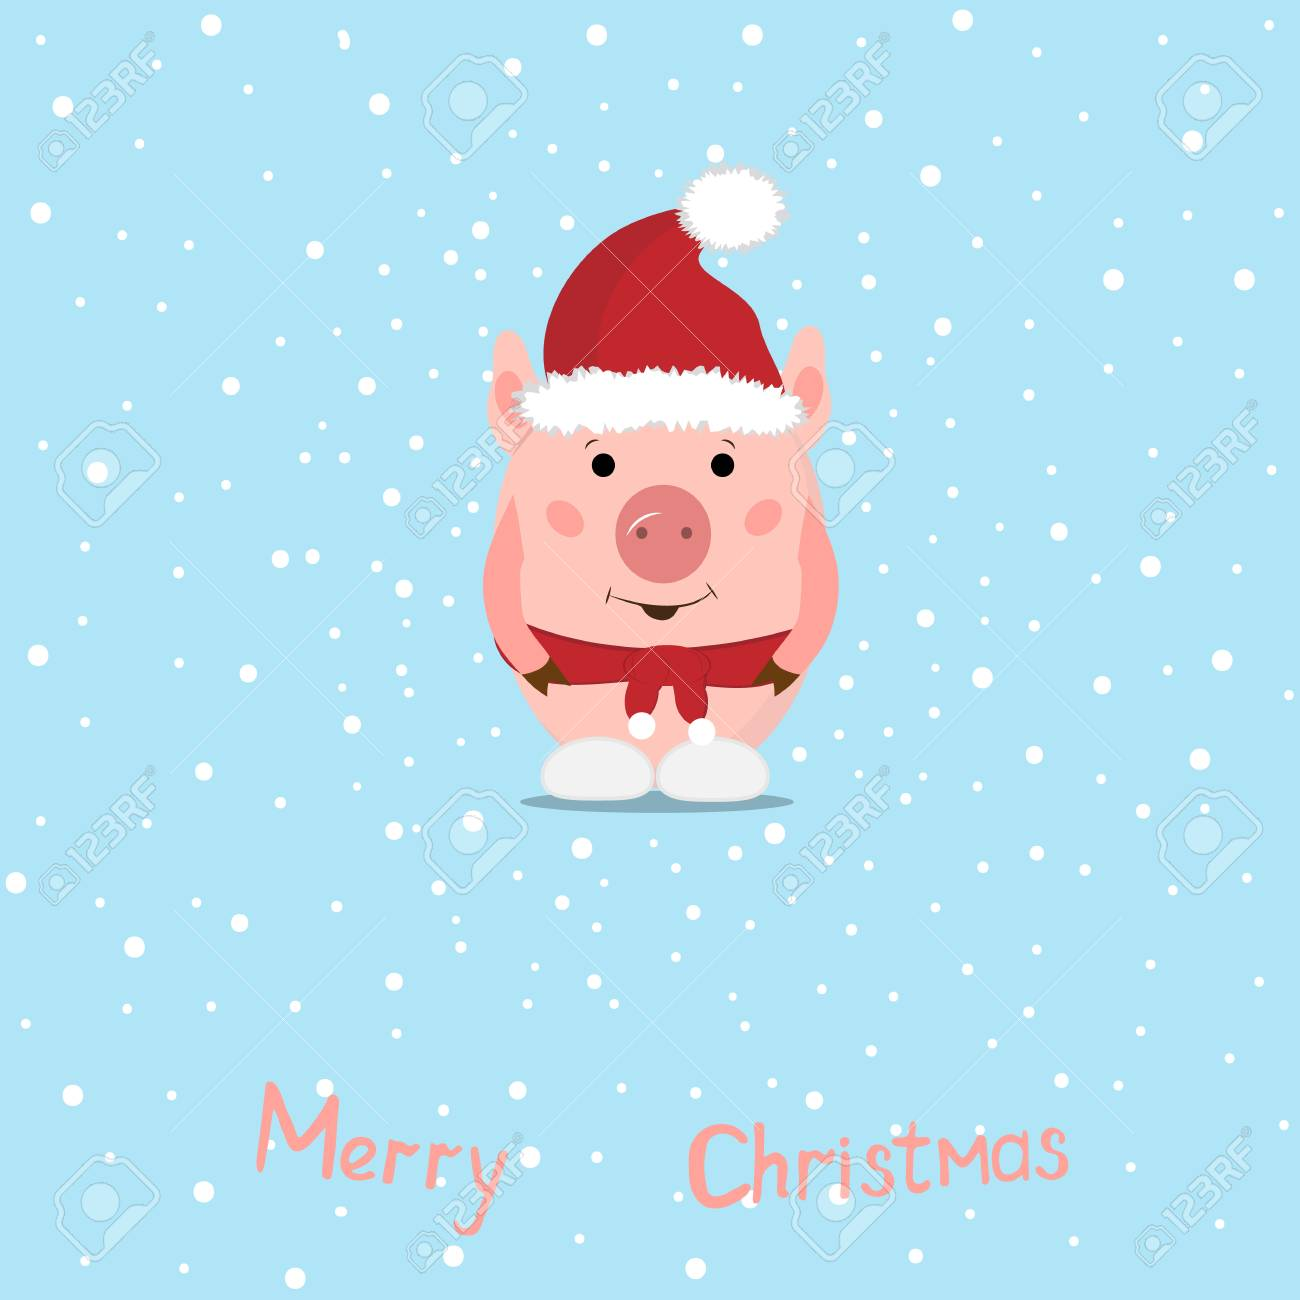 Christmas Pigs.Funny Christmas Pigs Greeting Card Merry Christmas And New Year